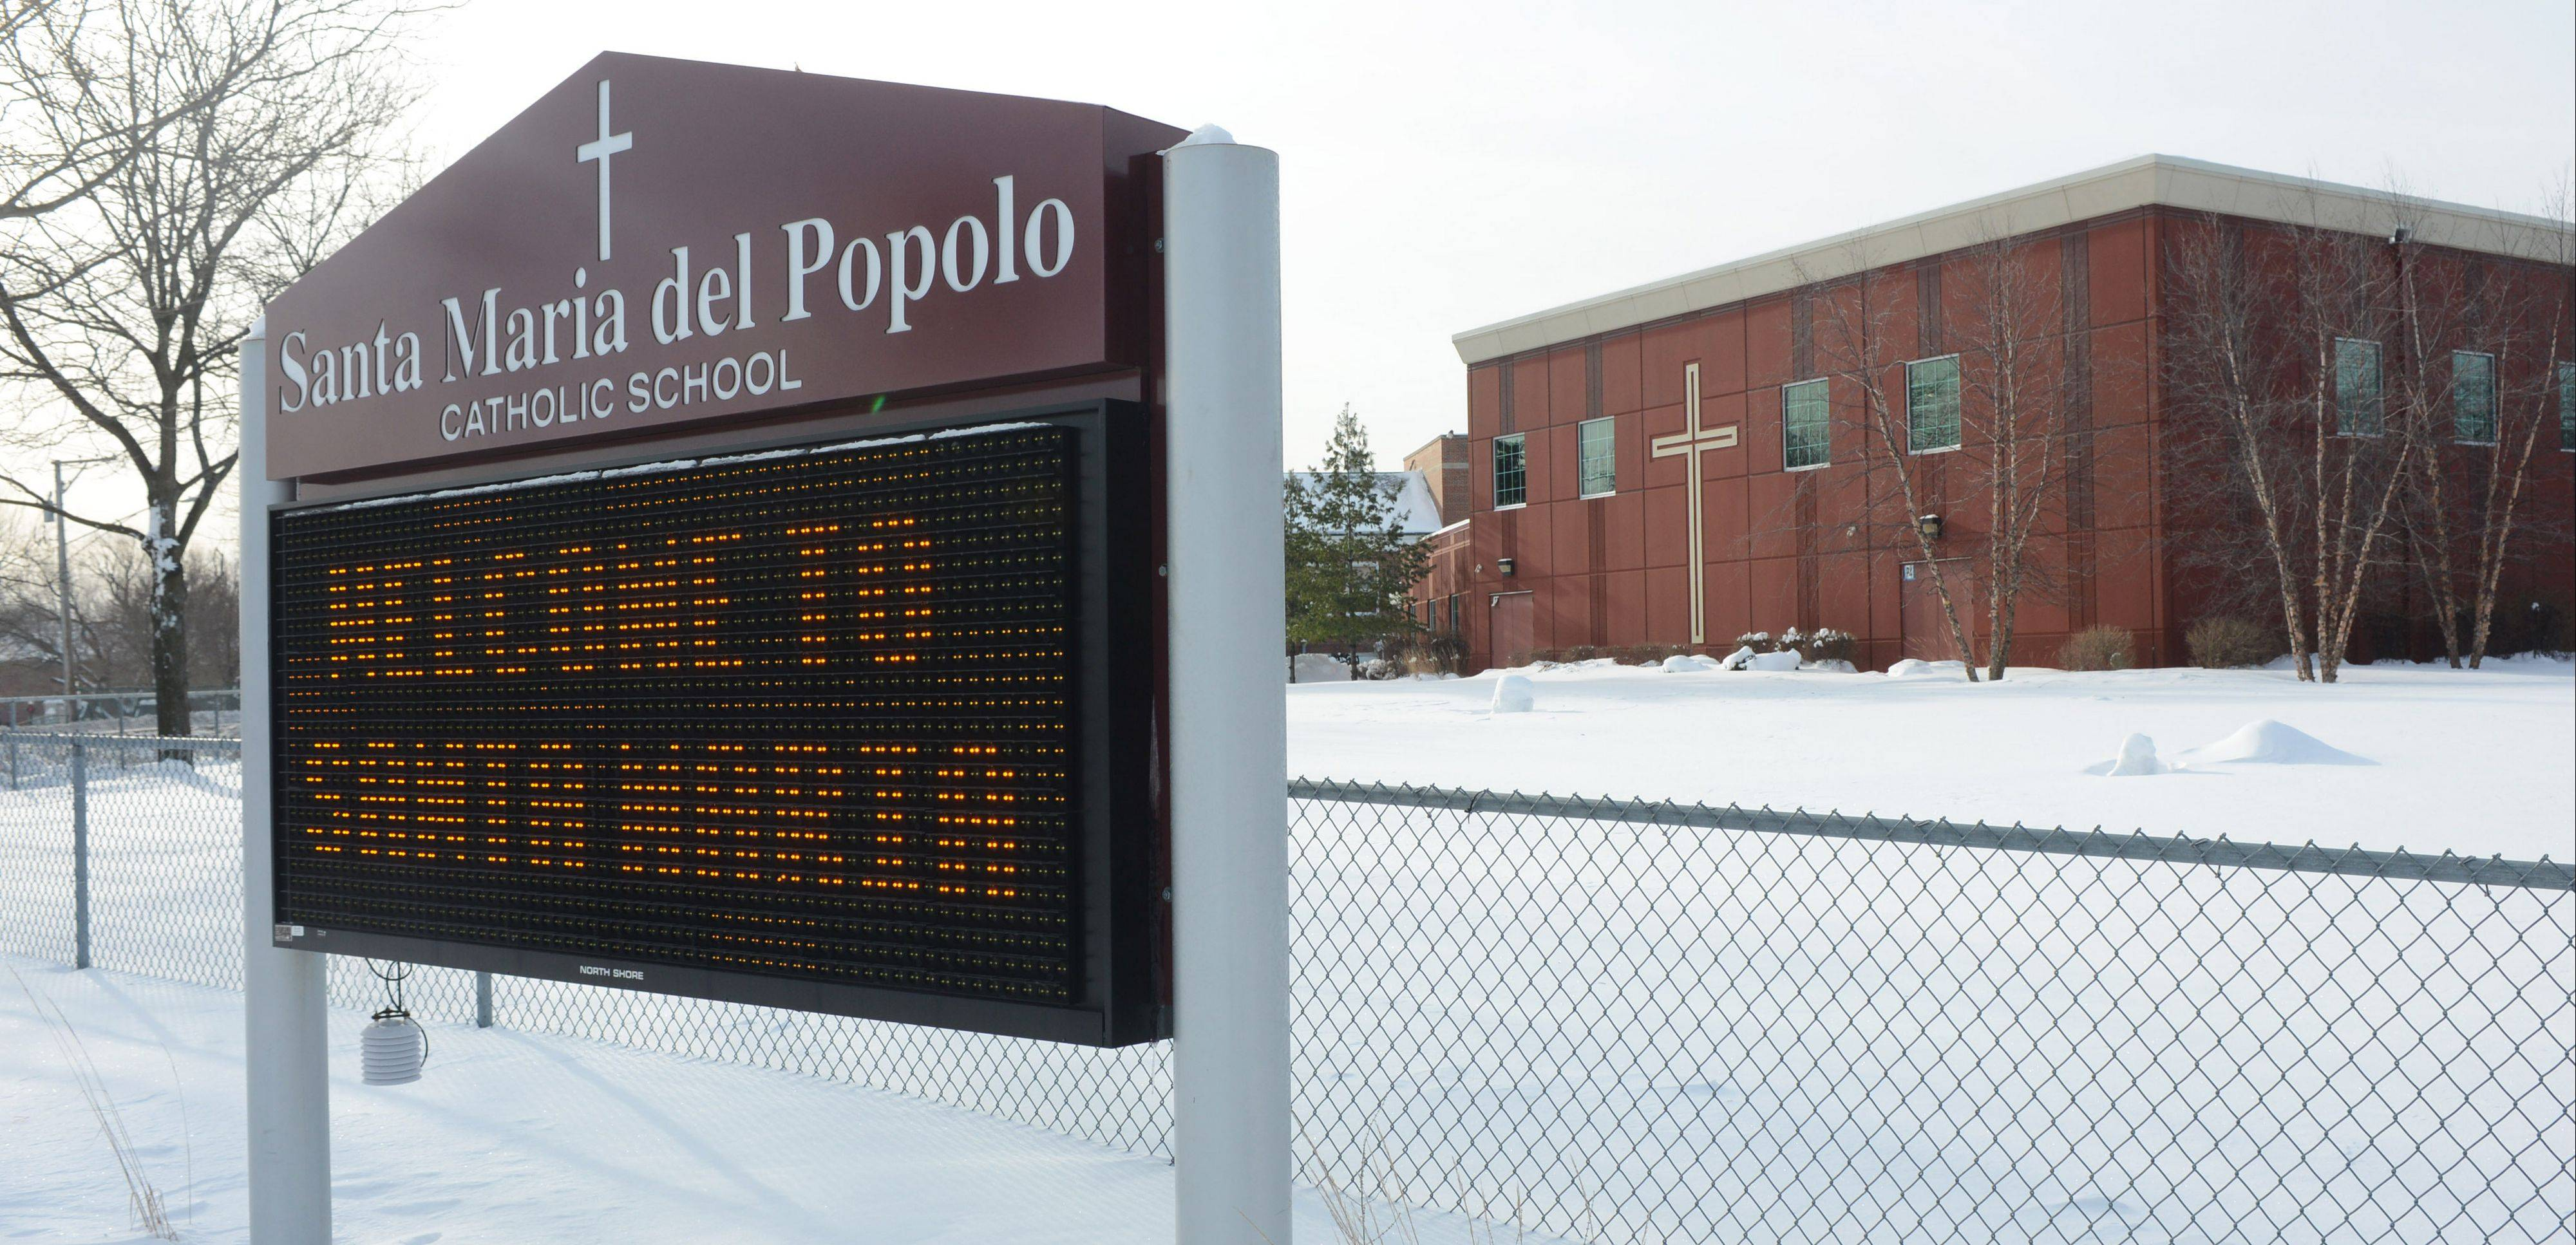 Archdiocese of Chicago officials have ordered the closure of Santa Maria del Popolo School in Mundelein when the academic season ends in June.